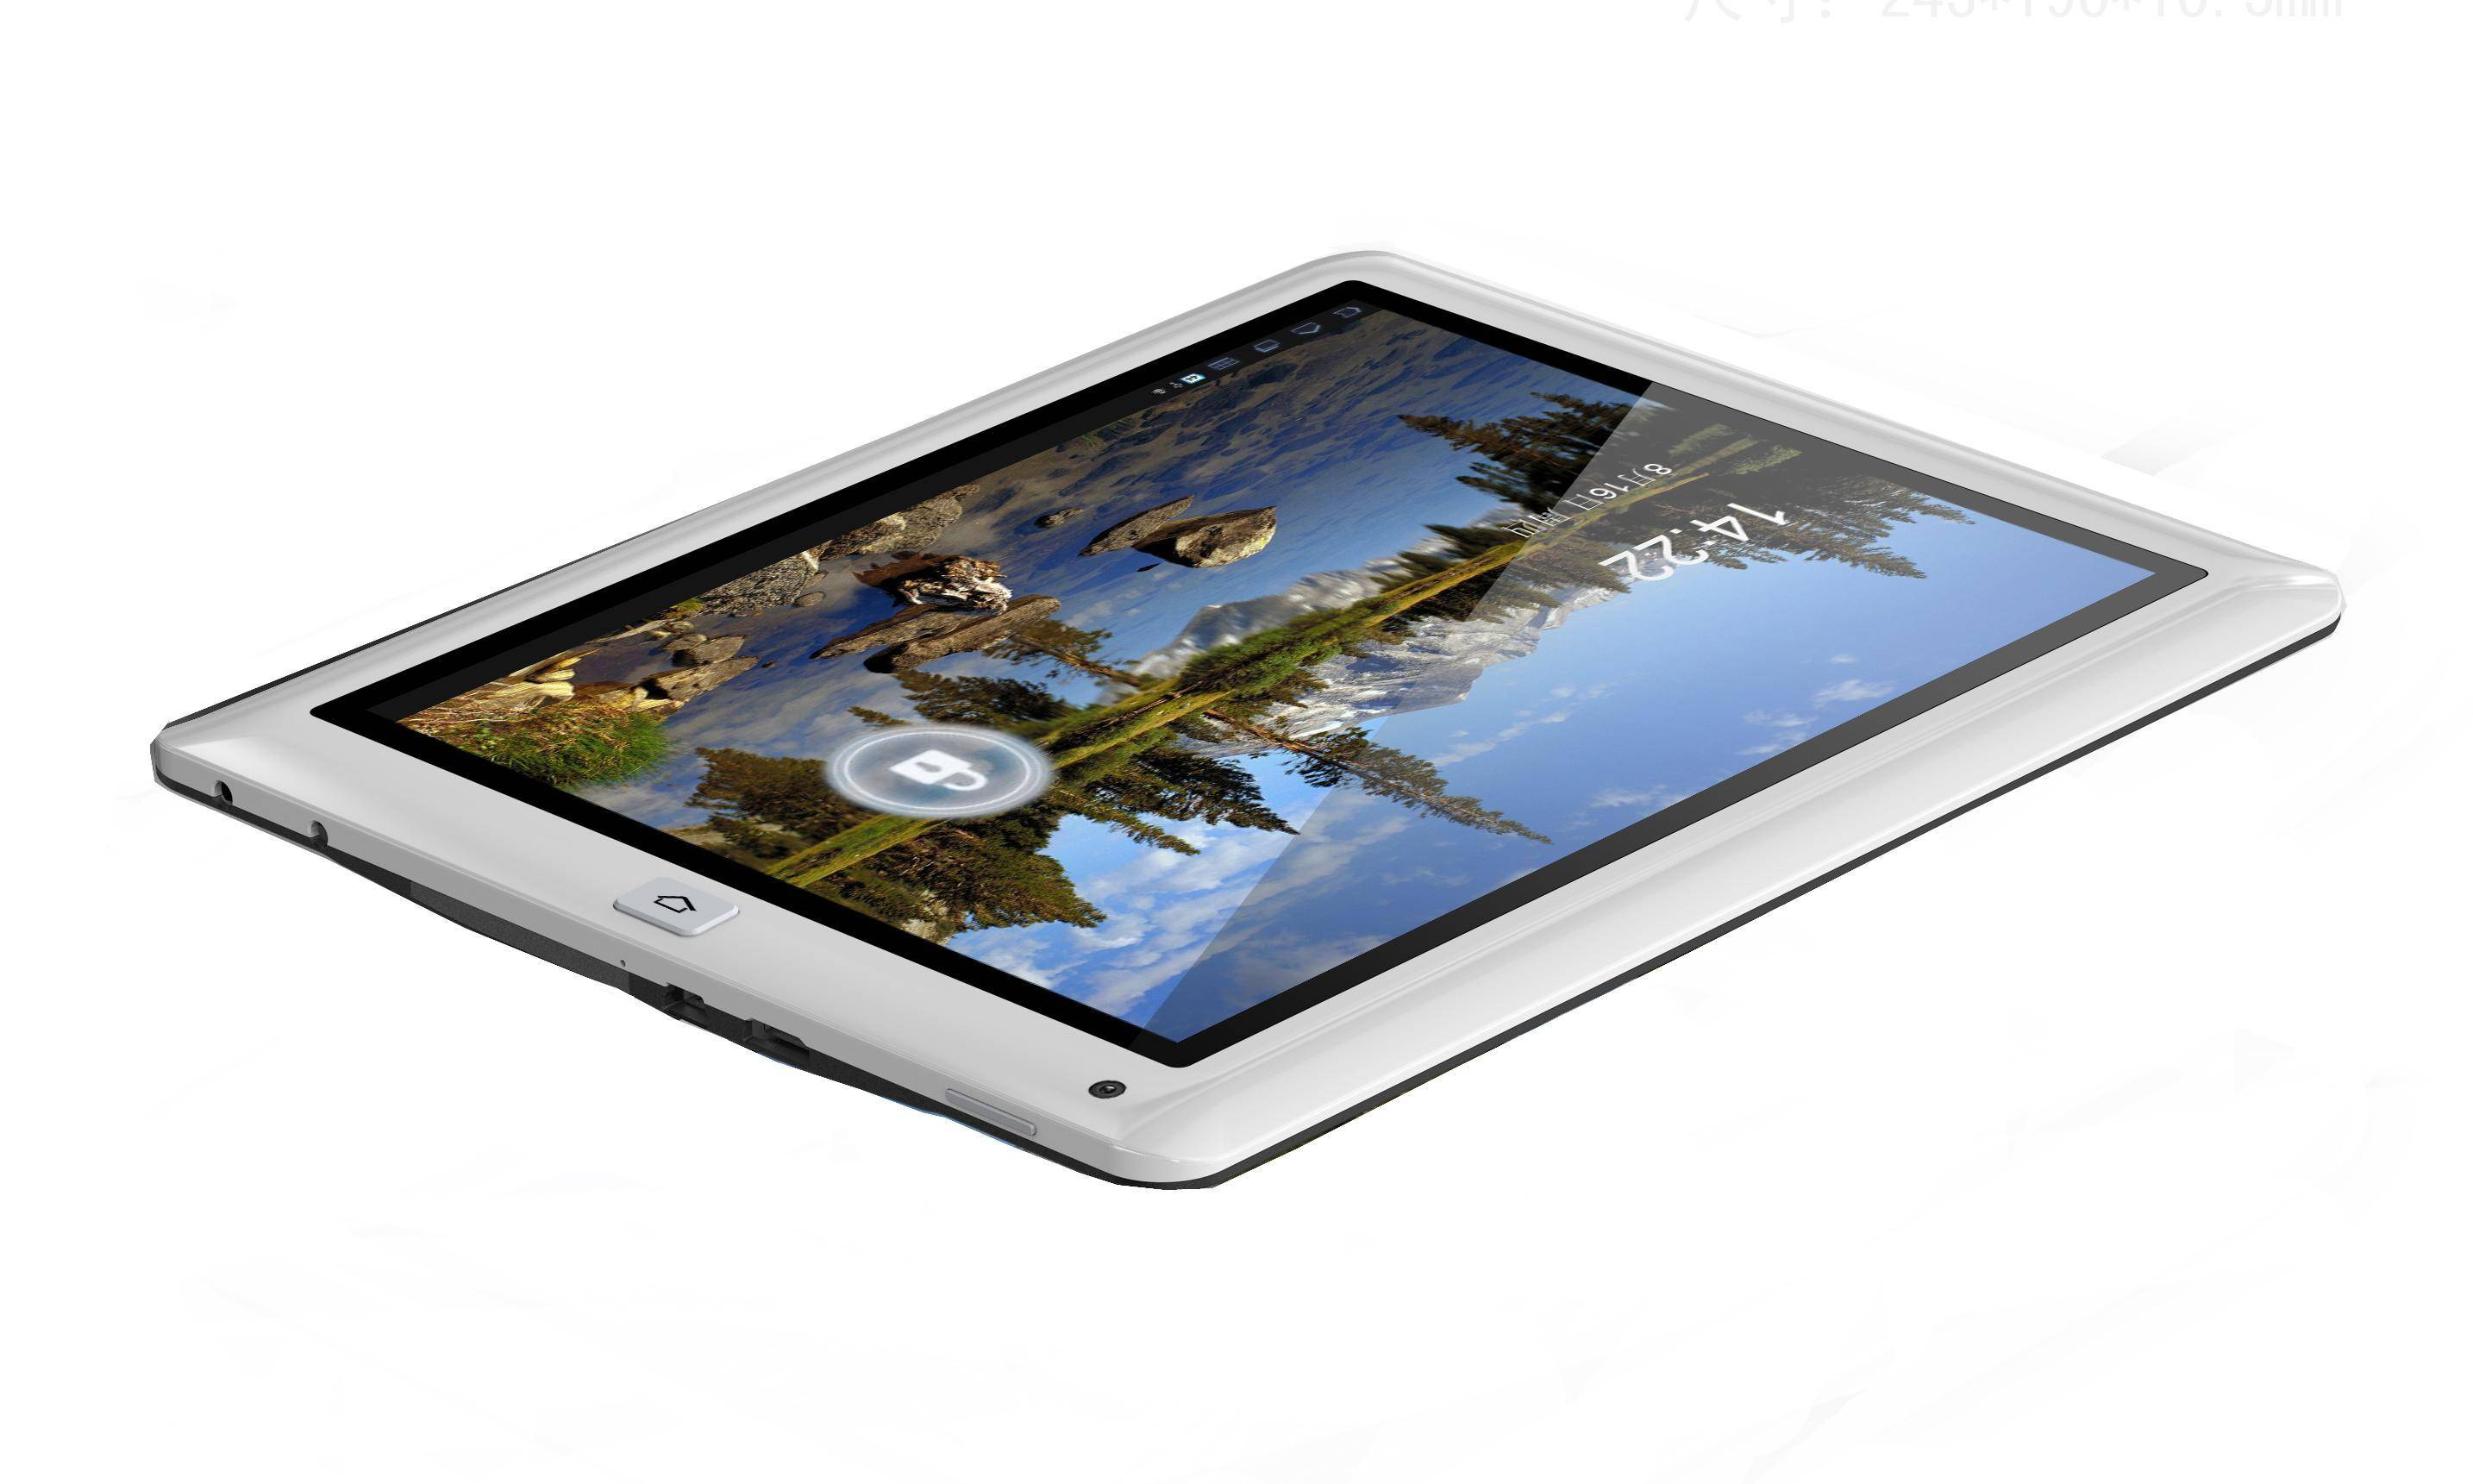 9.7 inch allwinner A10 1G RAM 8G ROM 1.2Ghz capacitive panel Wifi and 3G tablet pc